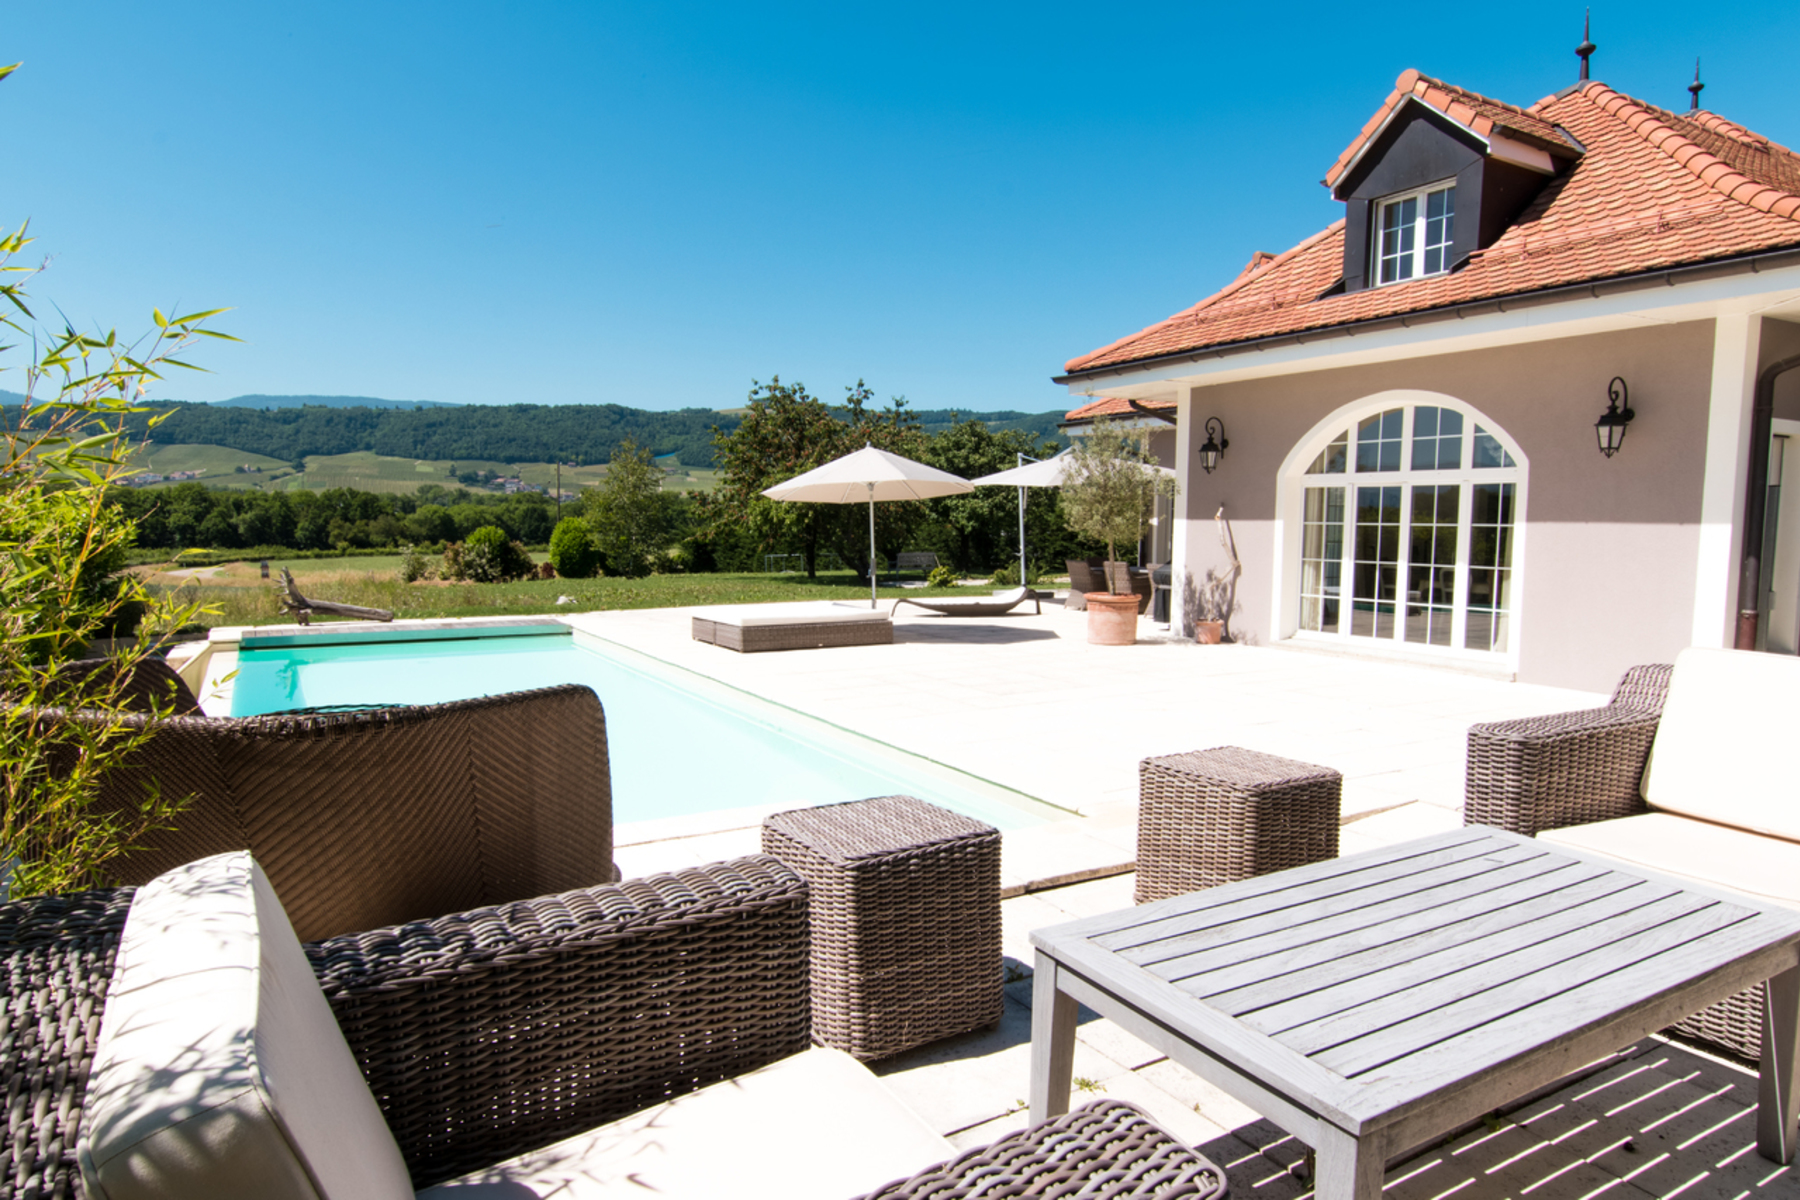 Single Family Home for Sale at Magnificent detached house overlooking the Jura Dully, Dully, Vaud, 1195 Switzerland